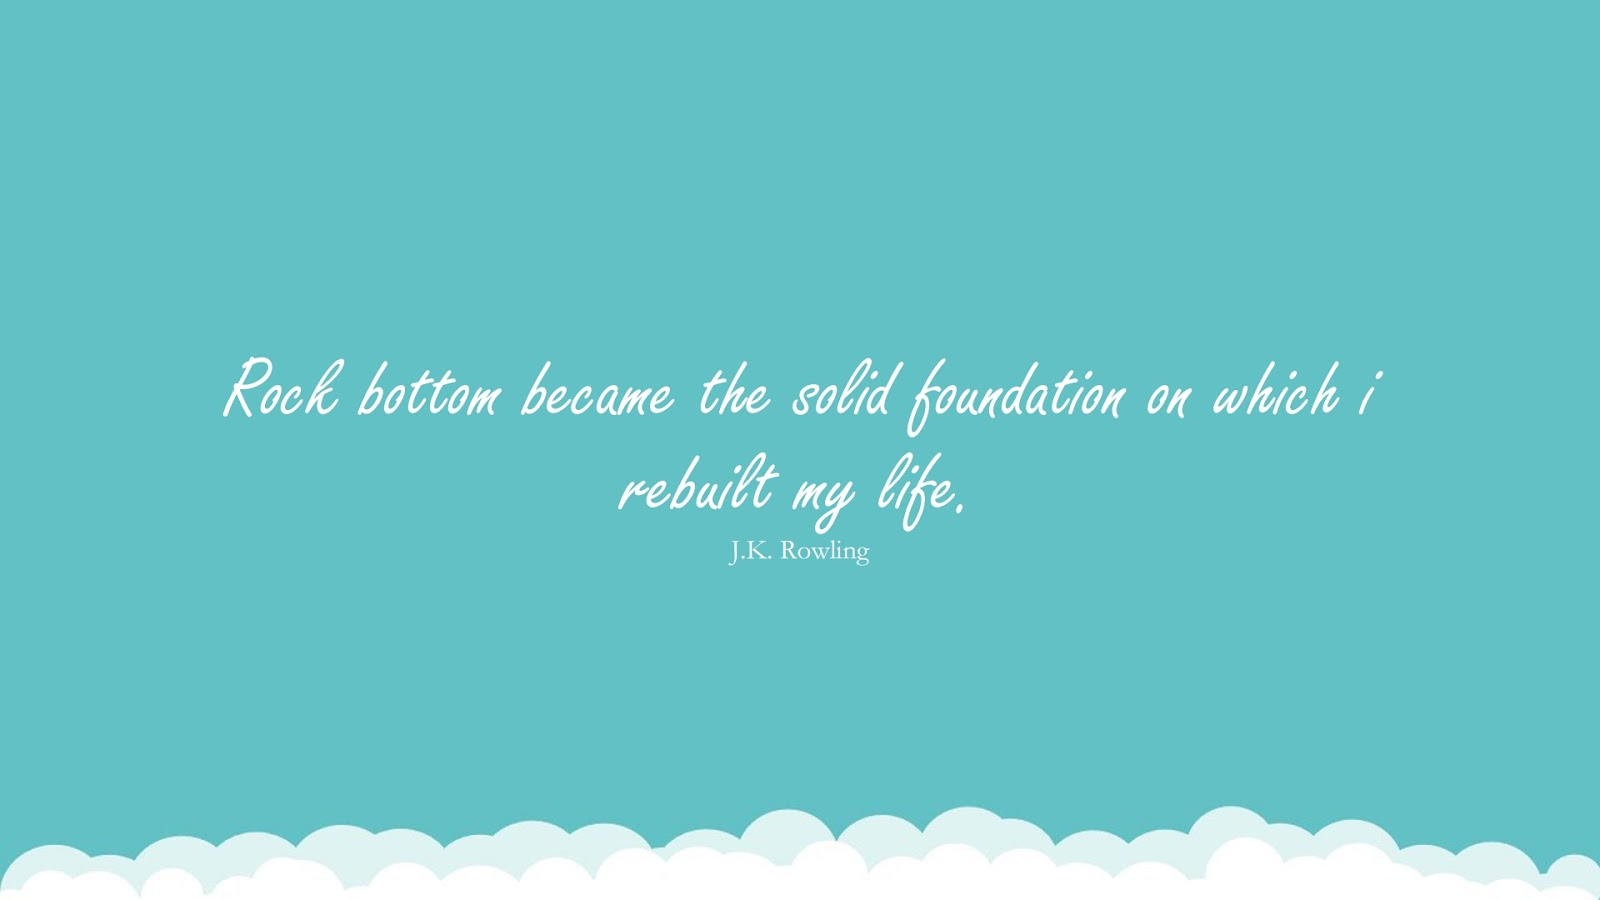 Rock bottom became the solid foundation on which i rebuilt my life. (J.K. Rowling);  #HopeQuotes